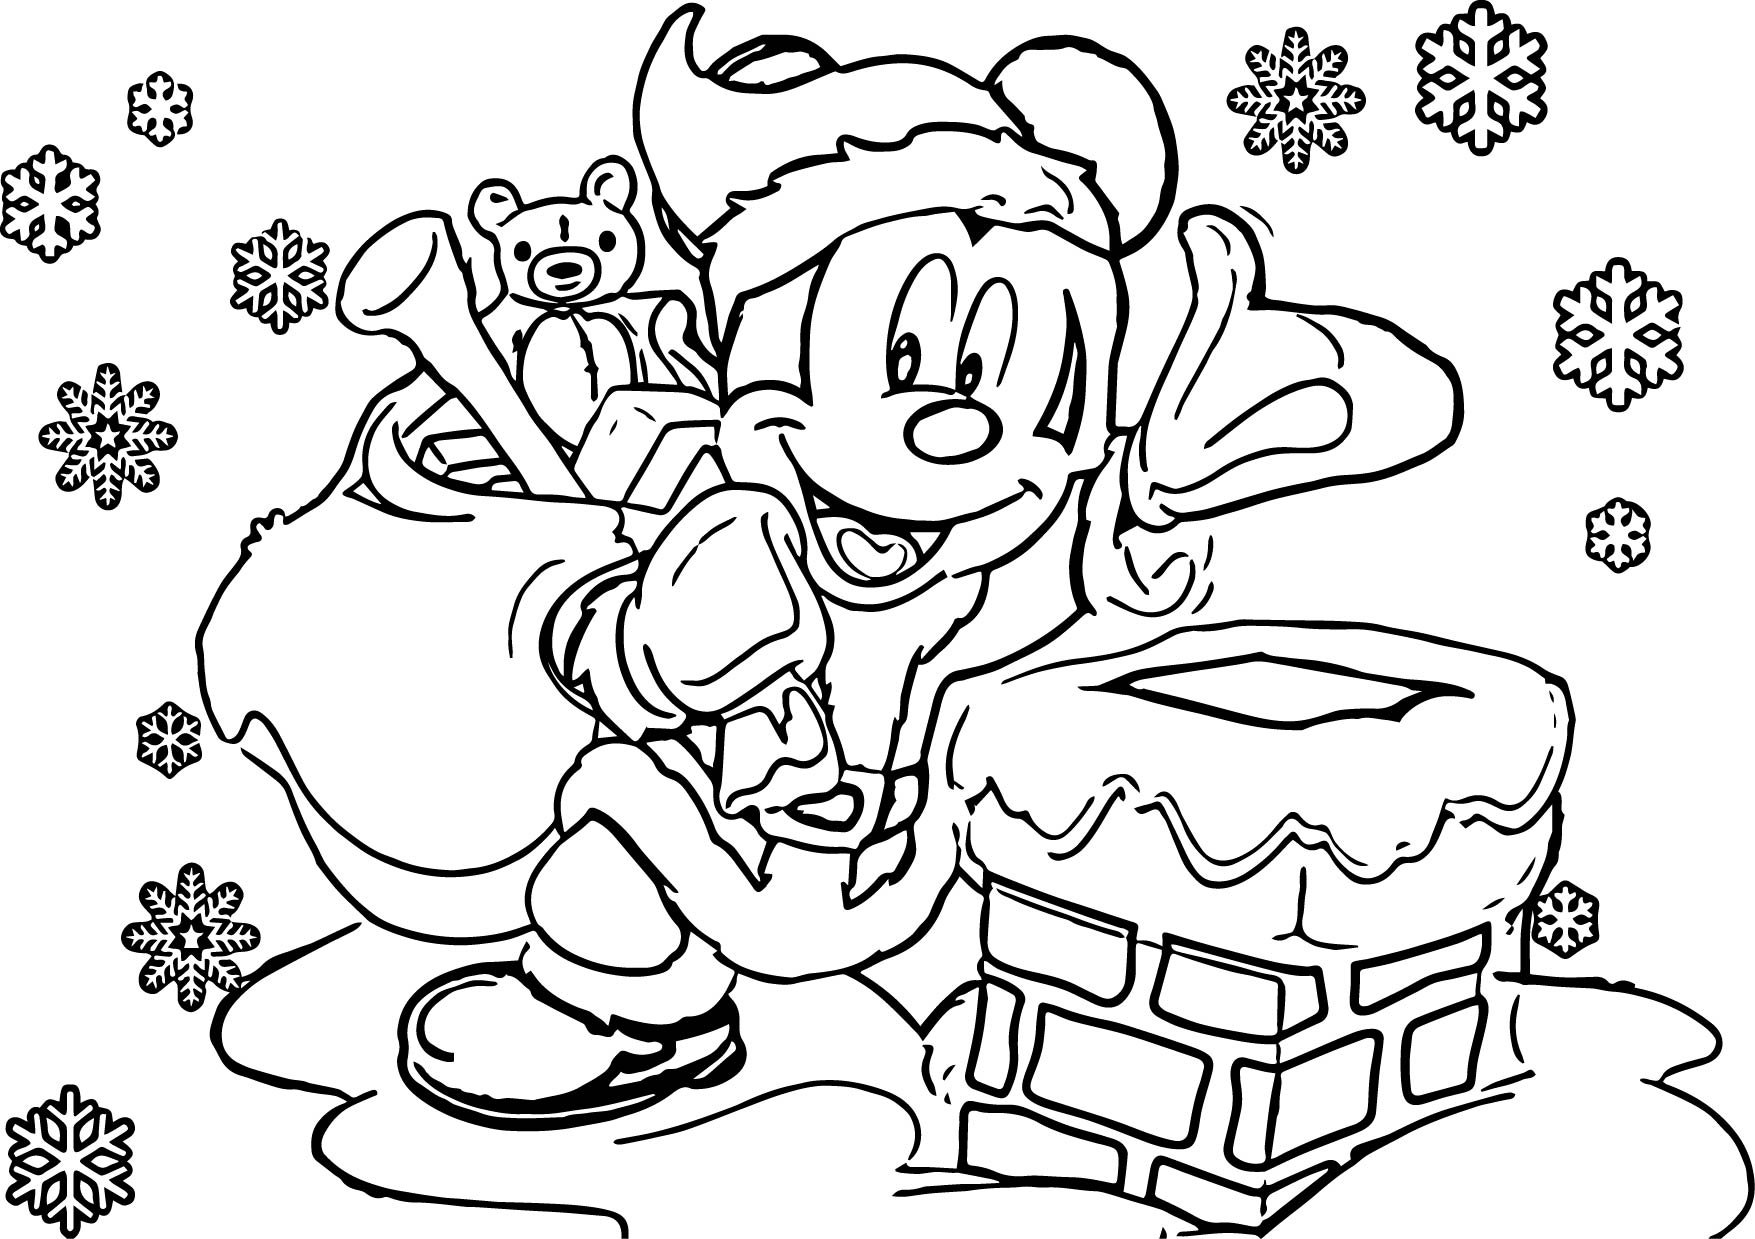 Christmas Coloring Drawings With New Disney Princess Pages Gallery Printable